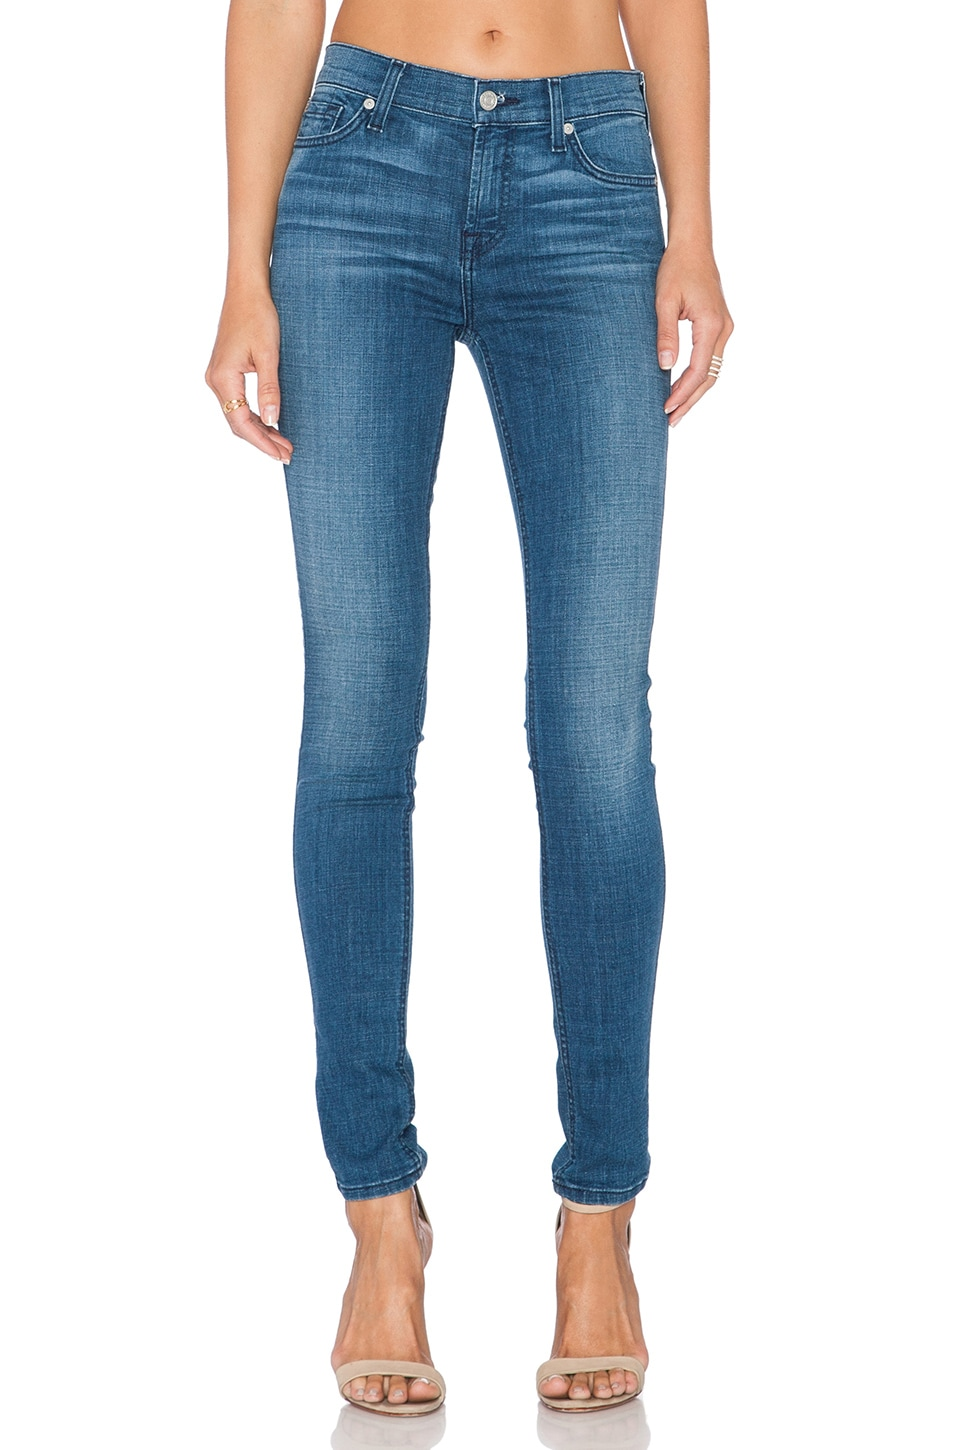 7 For All Mankind Mid Rise Skinny in Authentic Crisp Blue